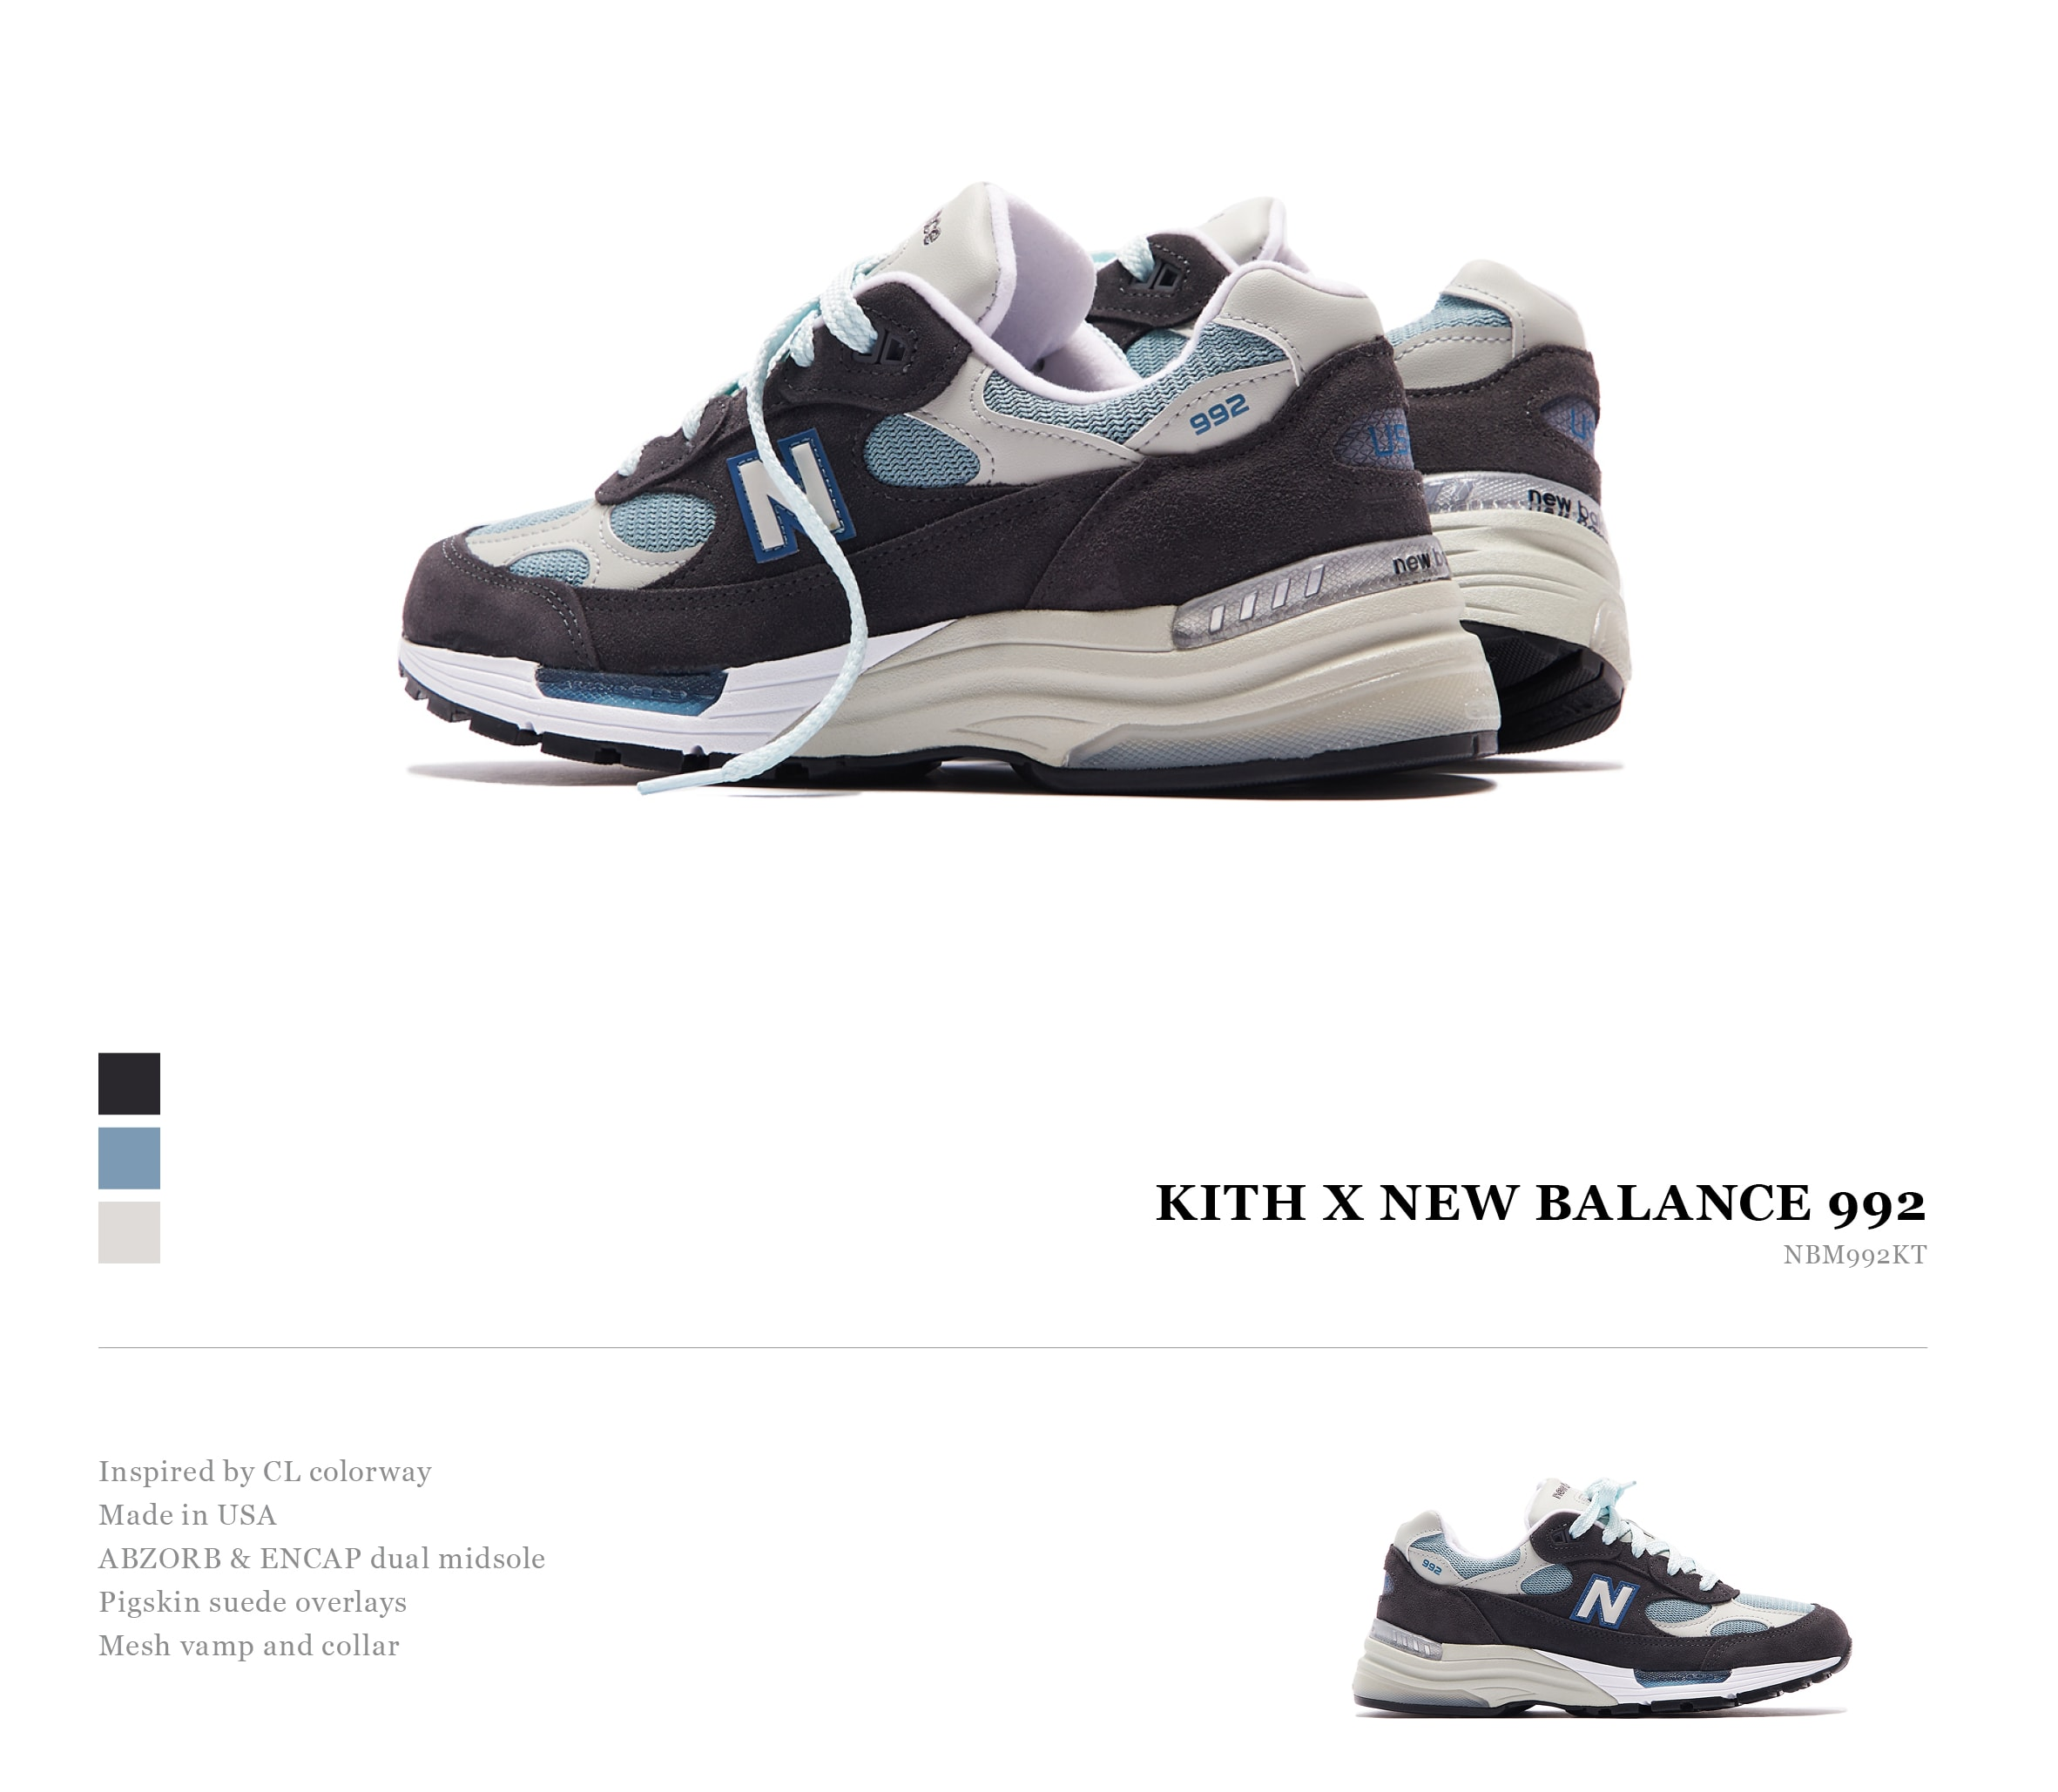 New Balance 992 (Kith Exclusive)